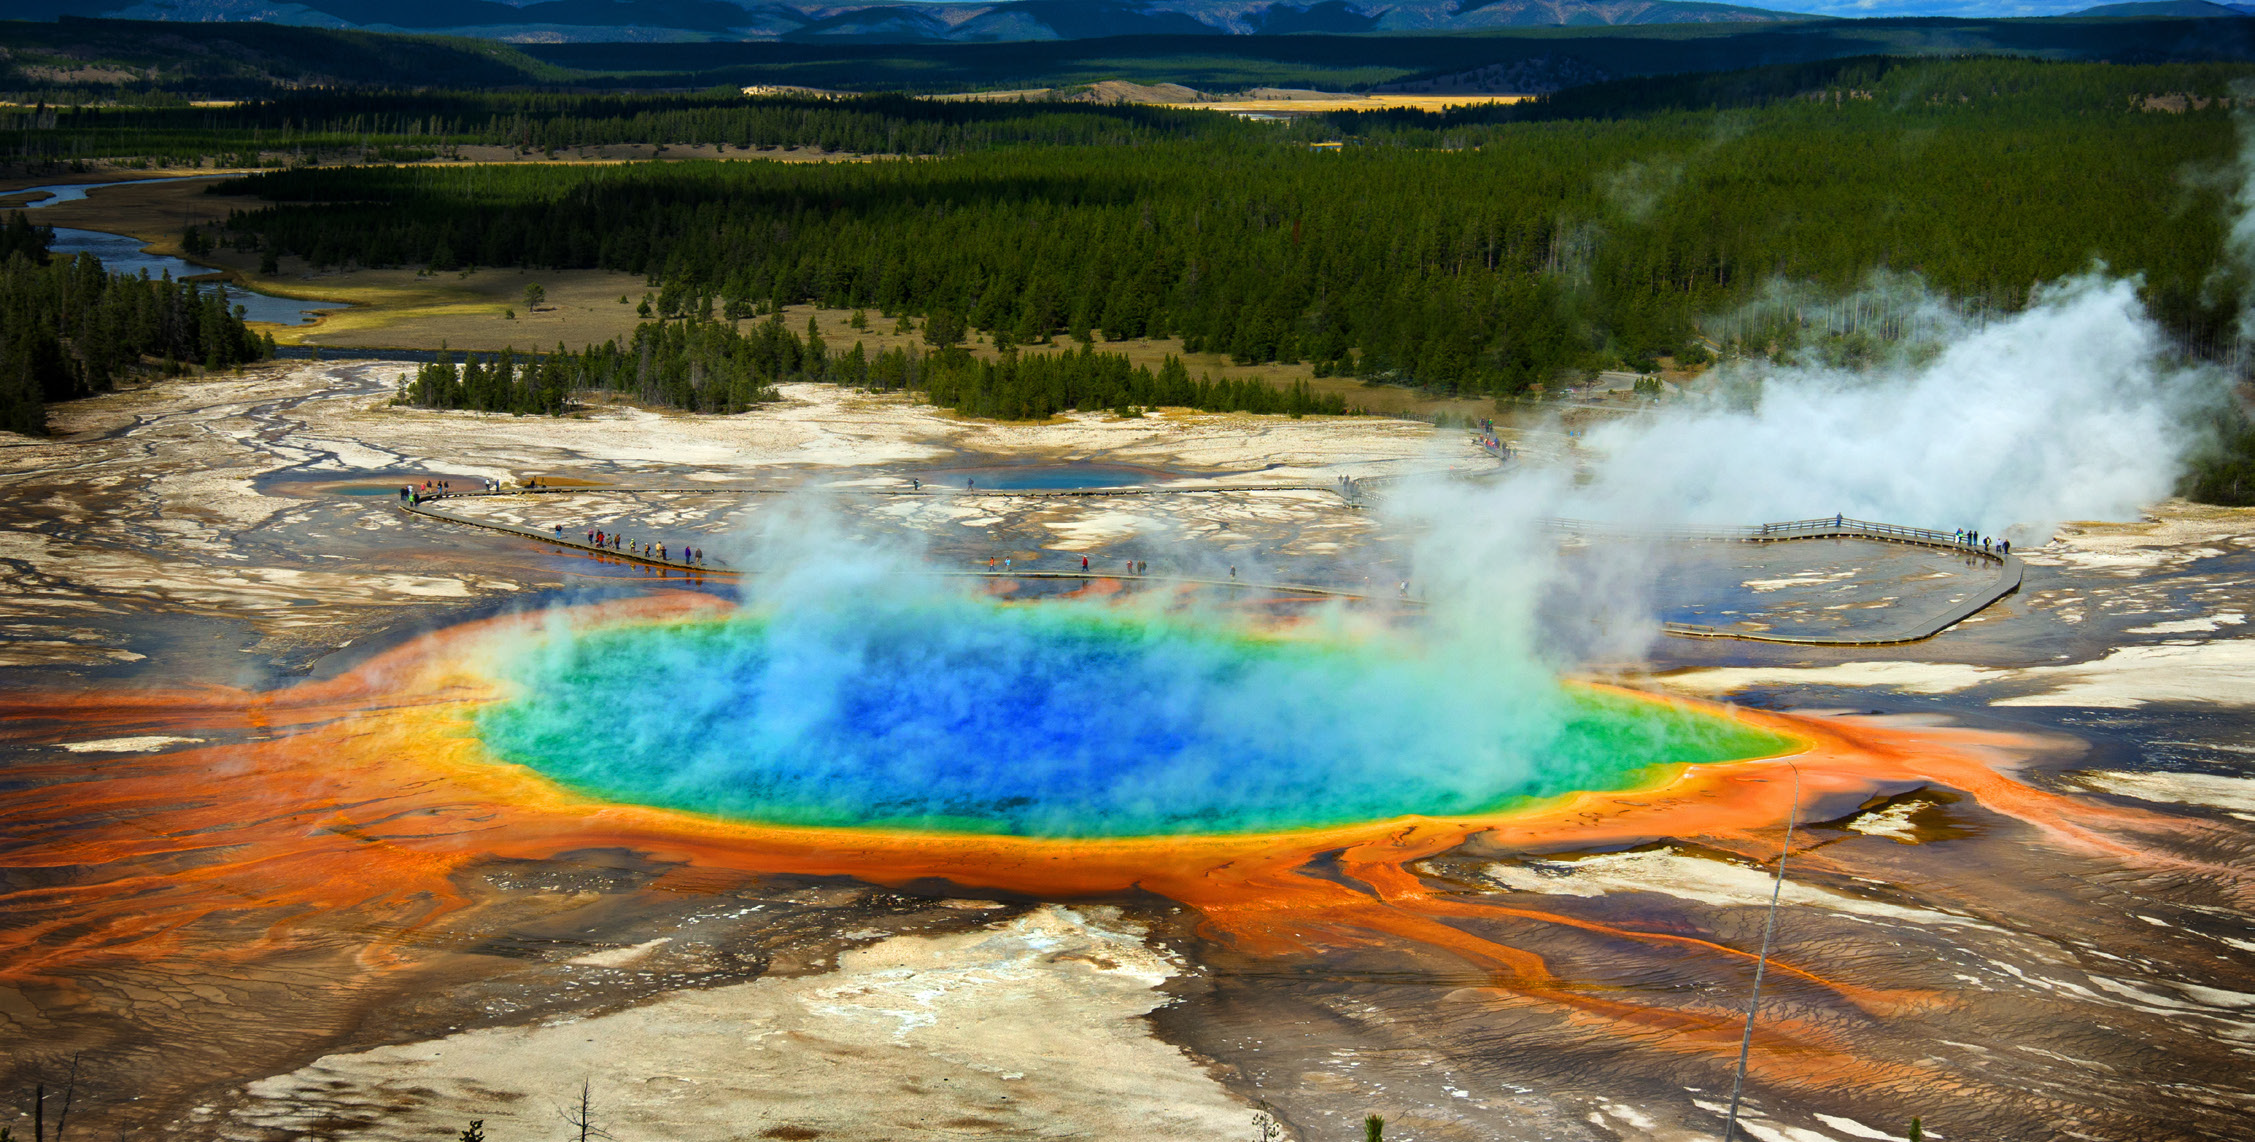 yellowstone_national_park_2021